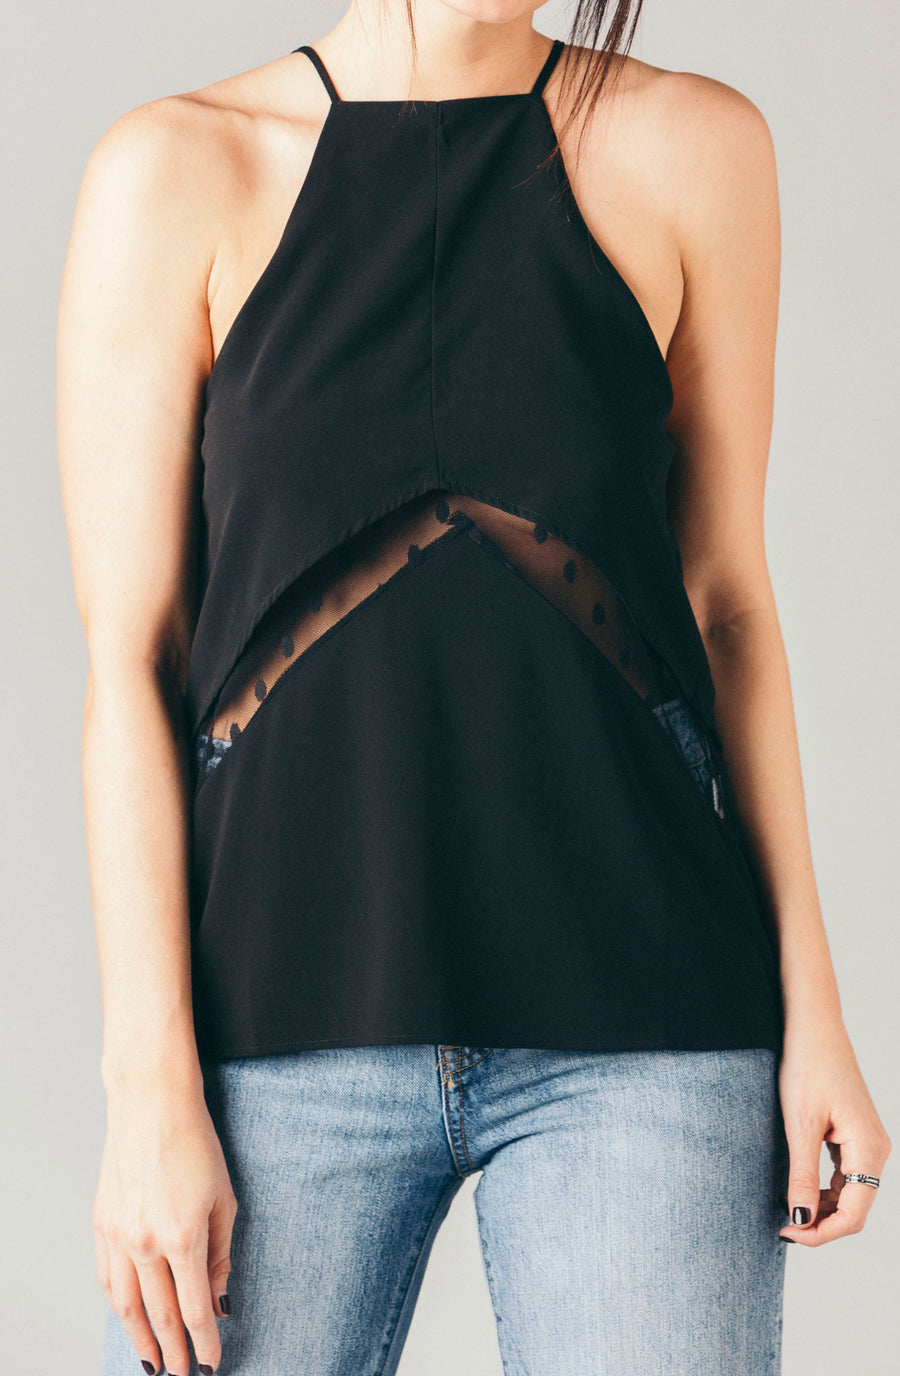 The Coverii black high square neck cami top with polka dot swiss dot lace panel peekaboo at waist.